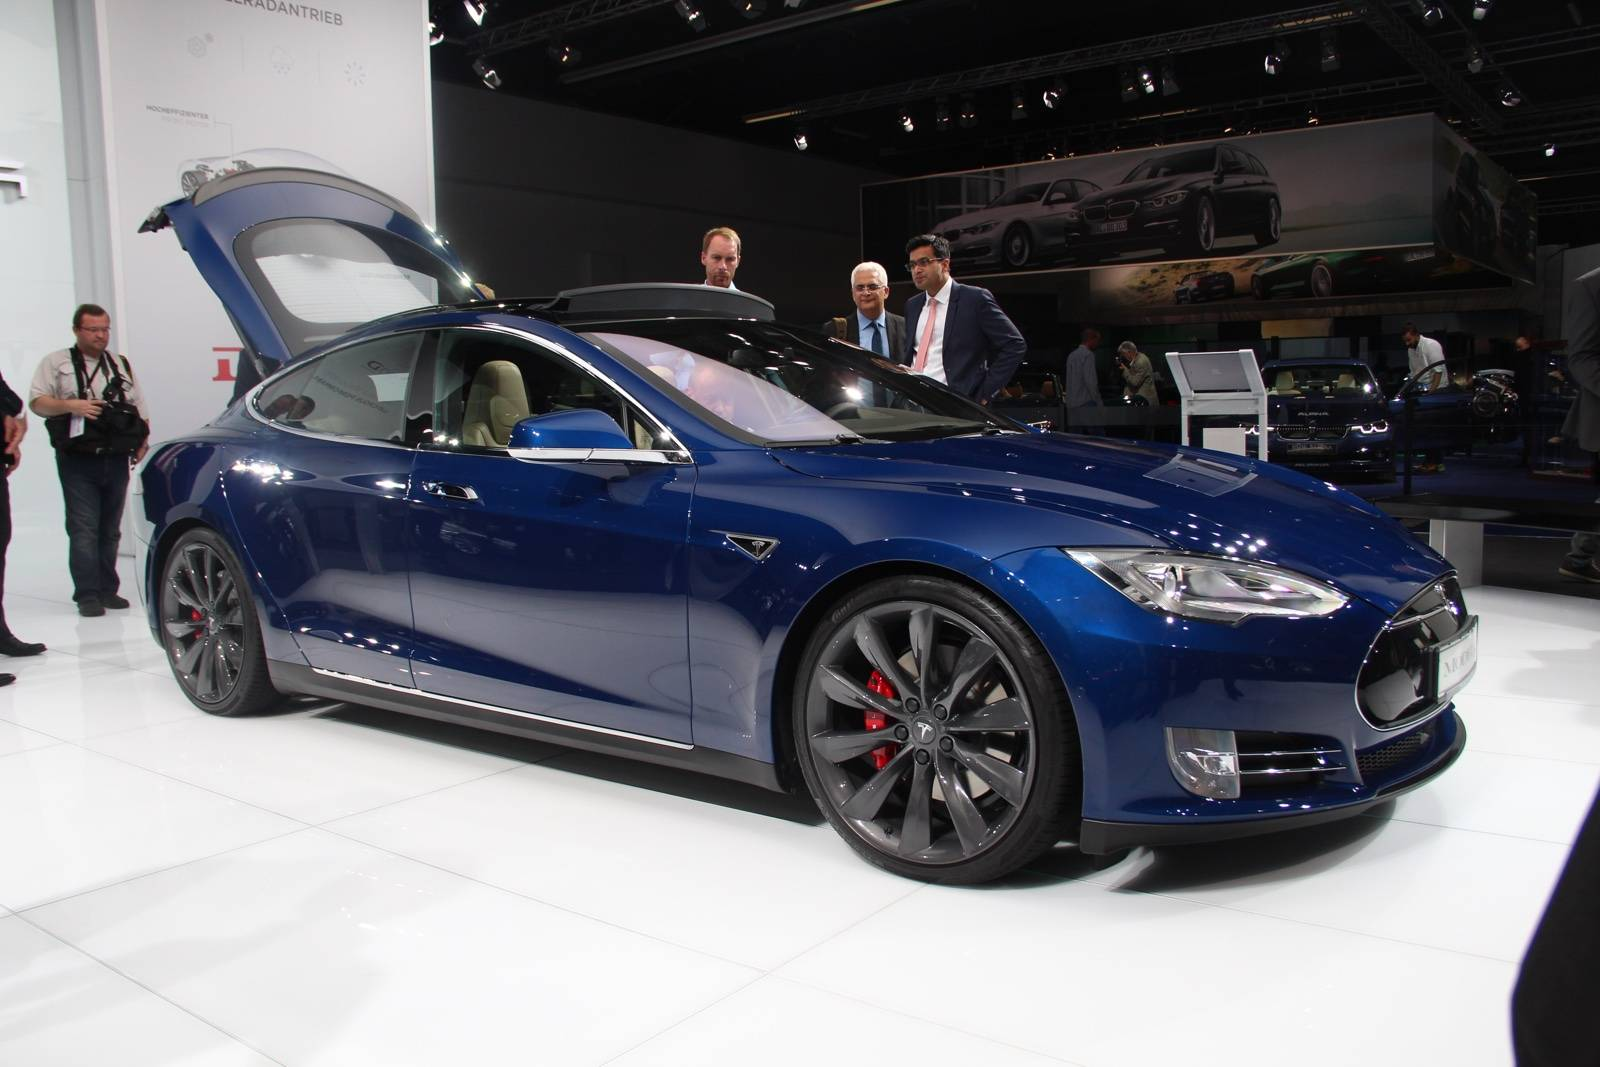 motor show tesla tesla model s frankfurt 2015 tesla model s p90d. Black Bedroom Furniture Sets. Home Design Ideas